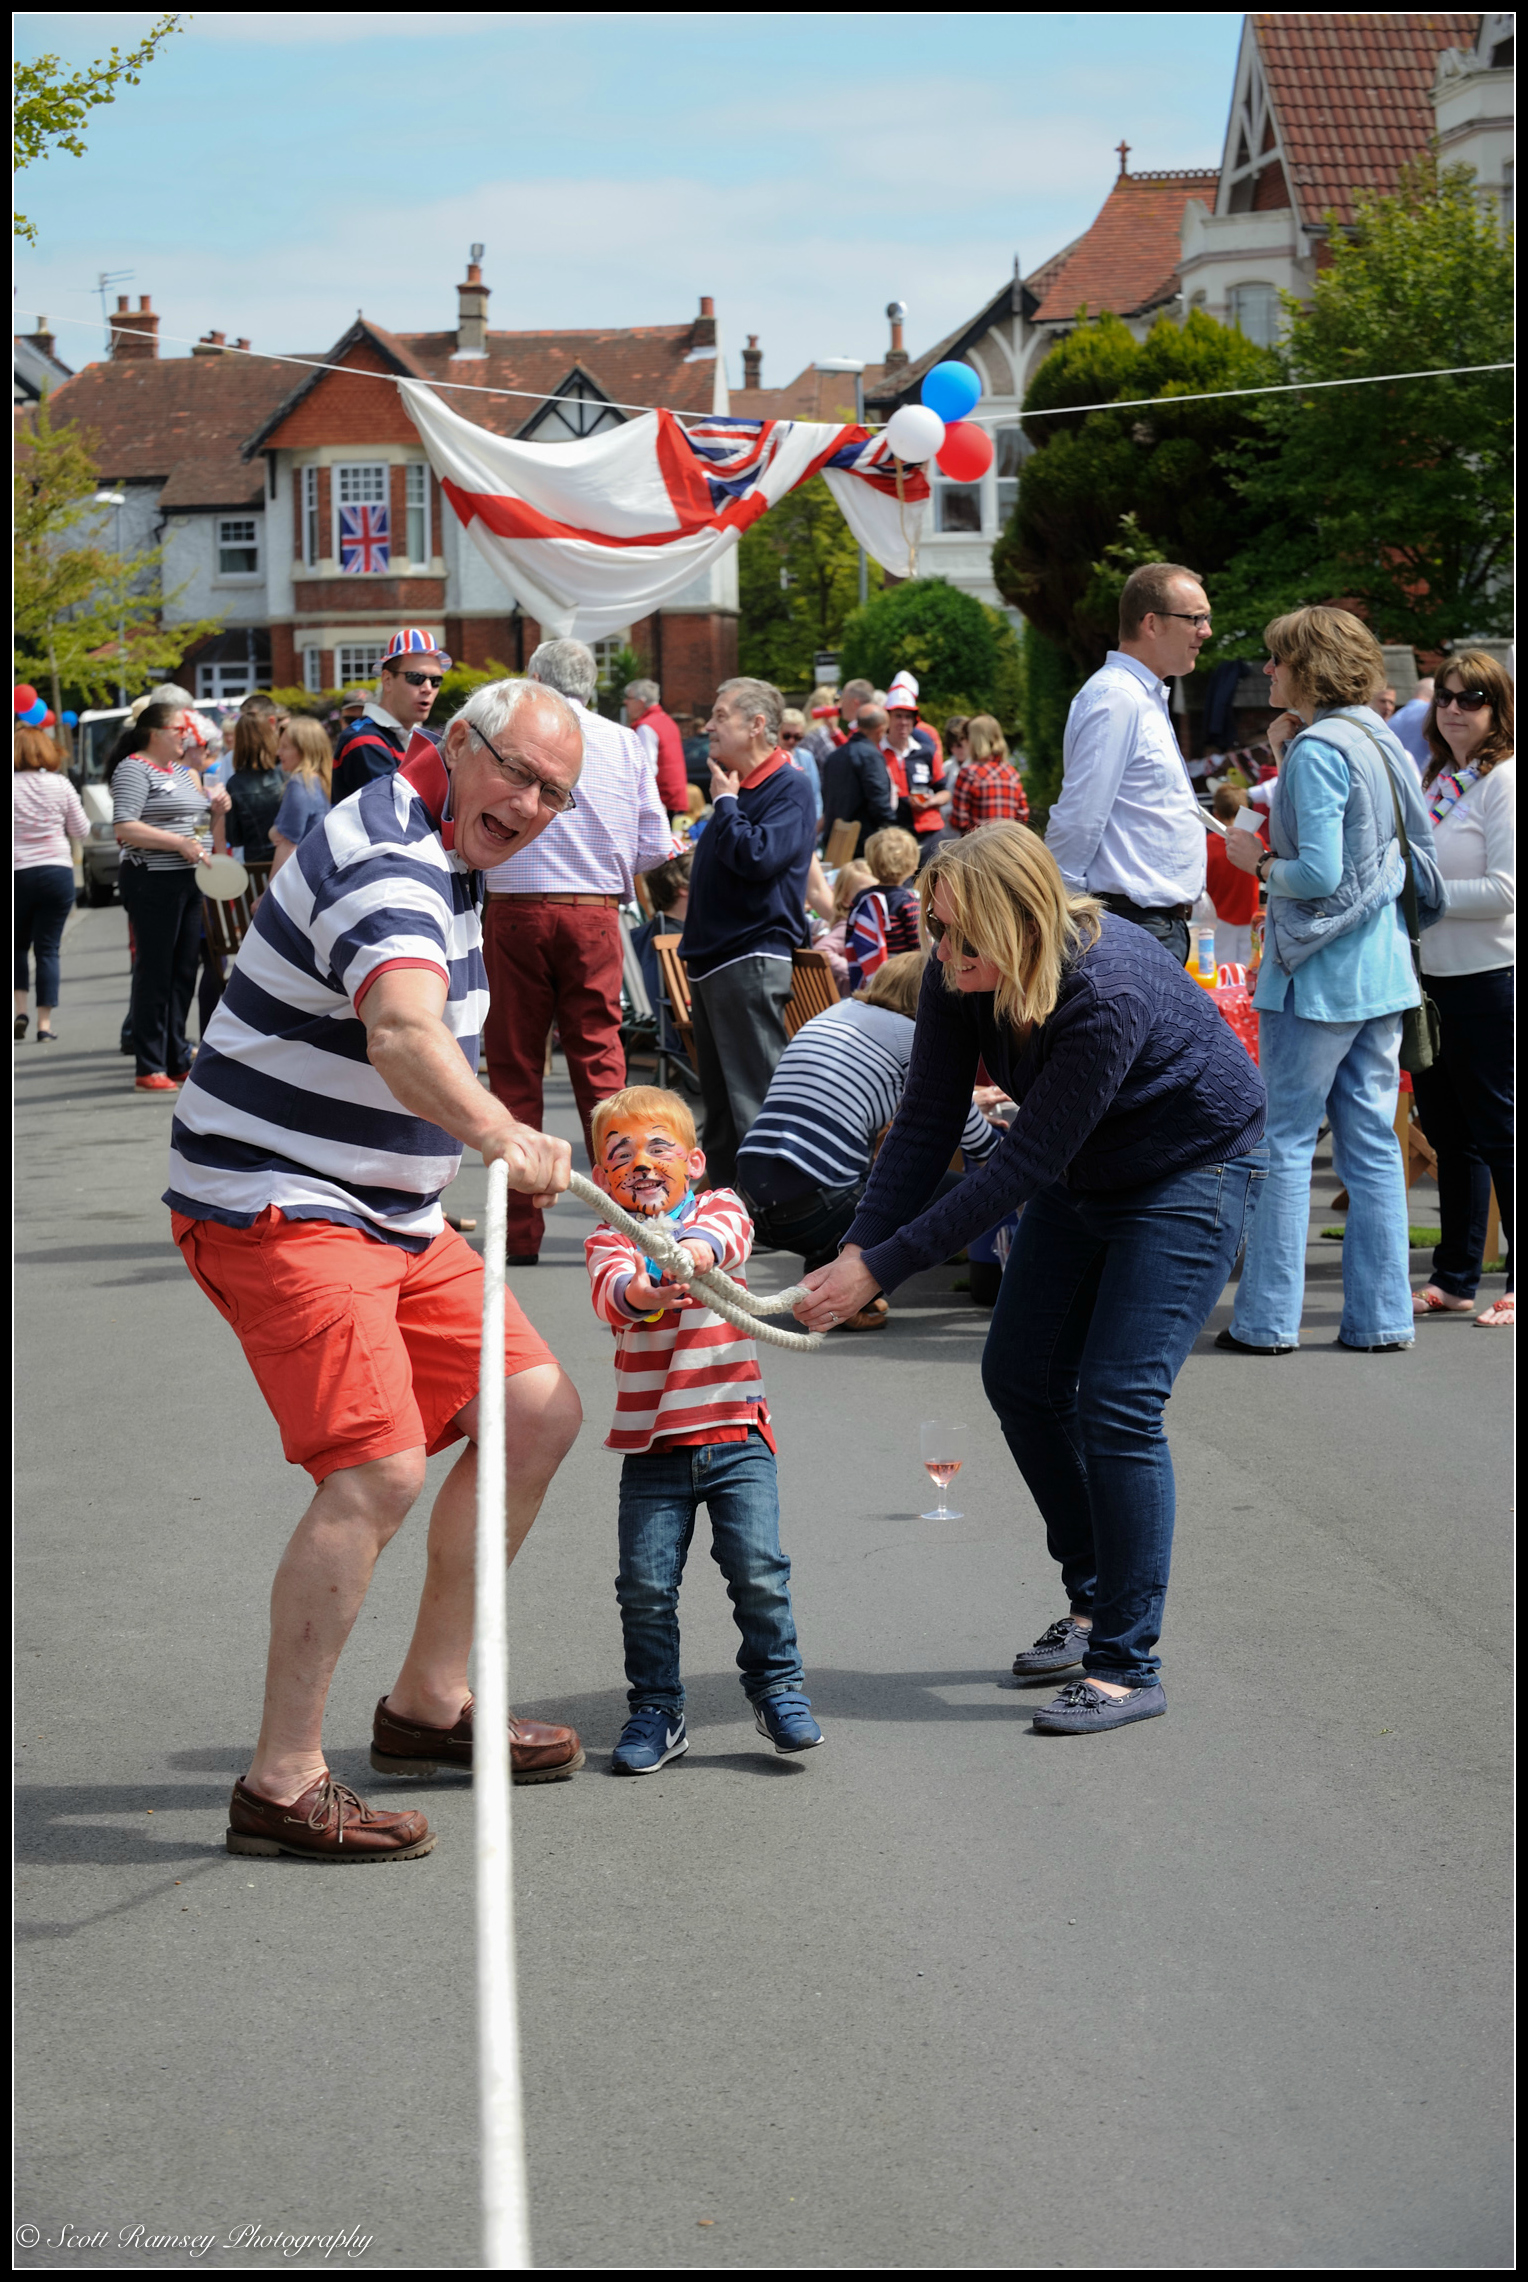 A man helps a young boy pull on a large rope during a tug of war match at the VE Day street party in Southsea, Portsmouth, UK. © Scott Ramsey Photography.